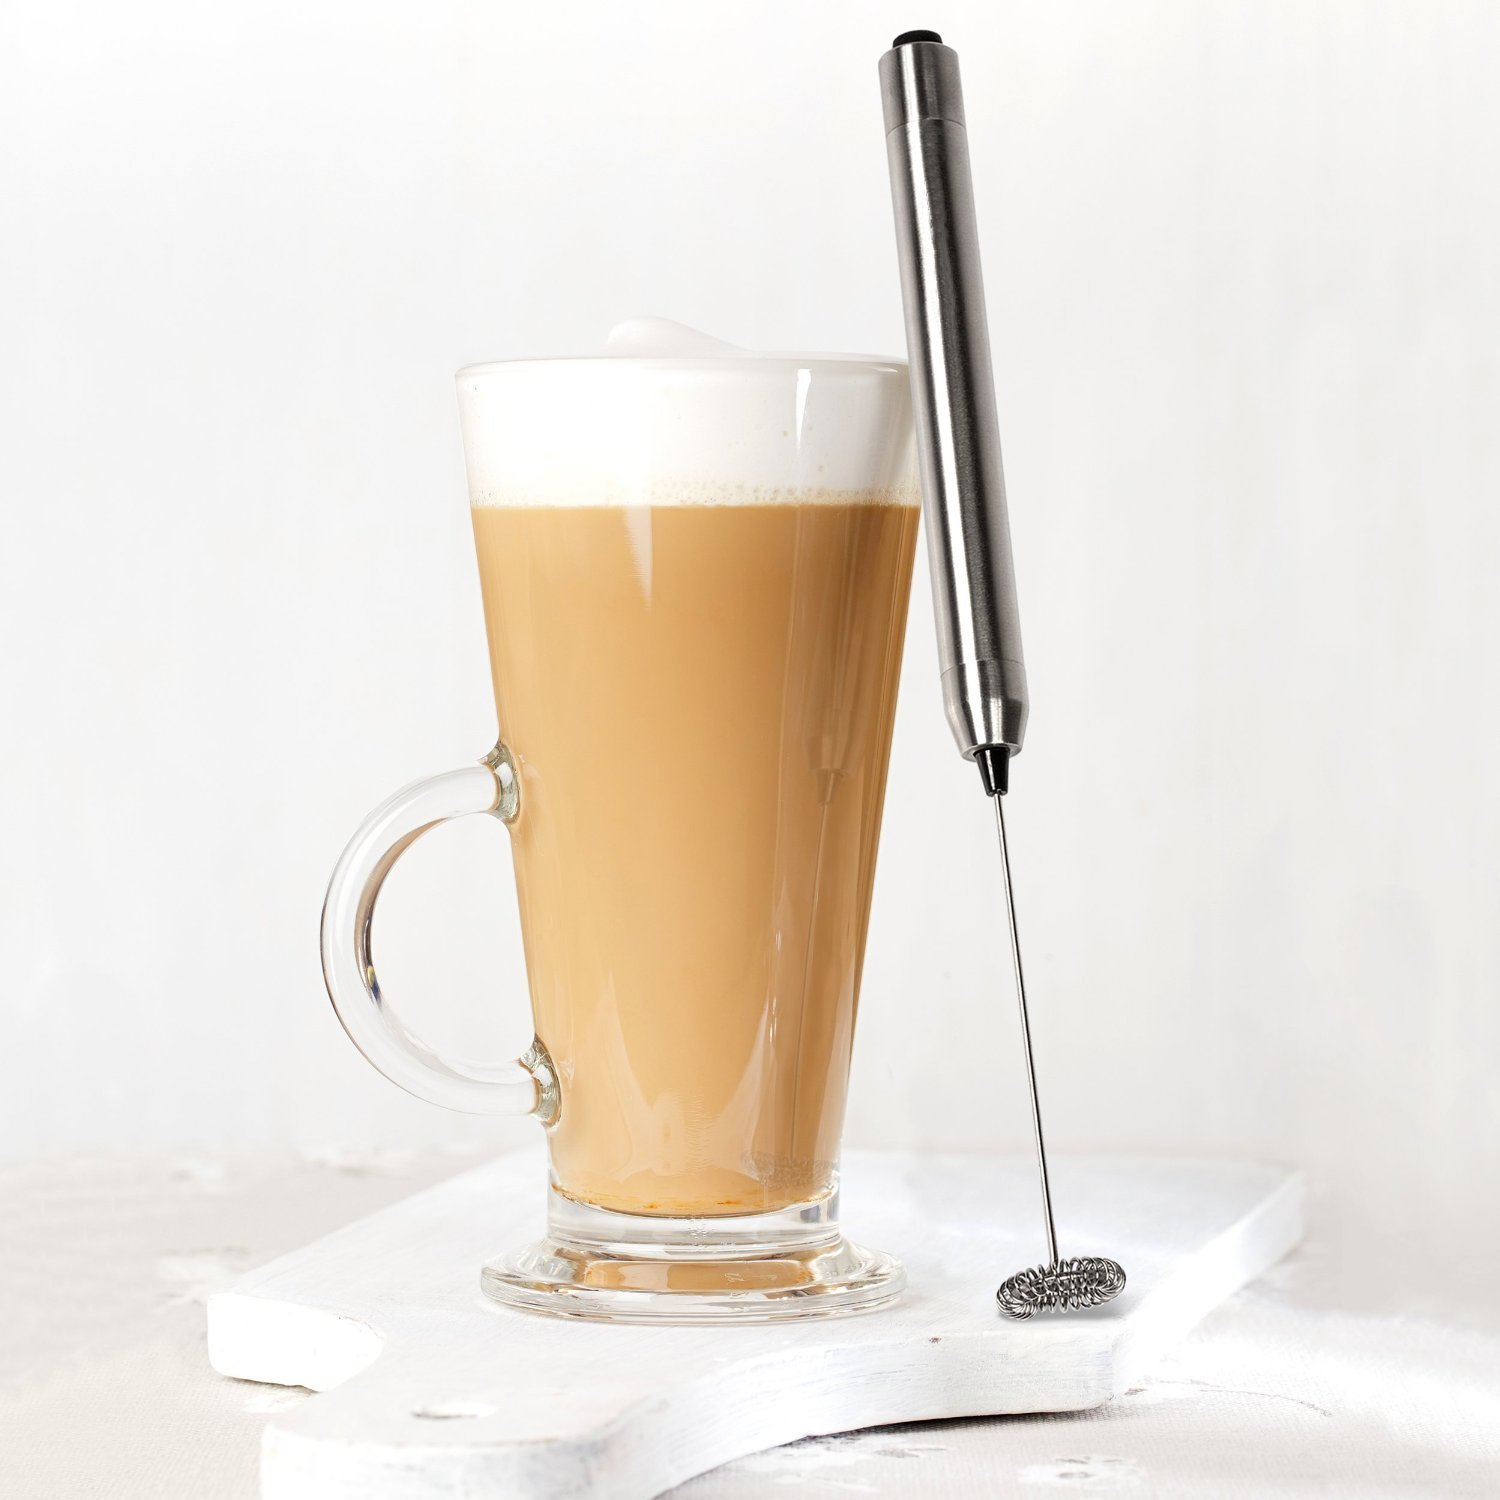 Thinp Handheld Milk Frother Wand with Stand - Professional Stainless Steel Drink Mixer & Barista Latte Art Tool - Make Decadent Cafe Style Foam for ...